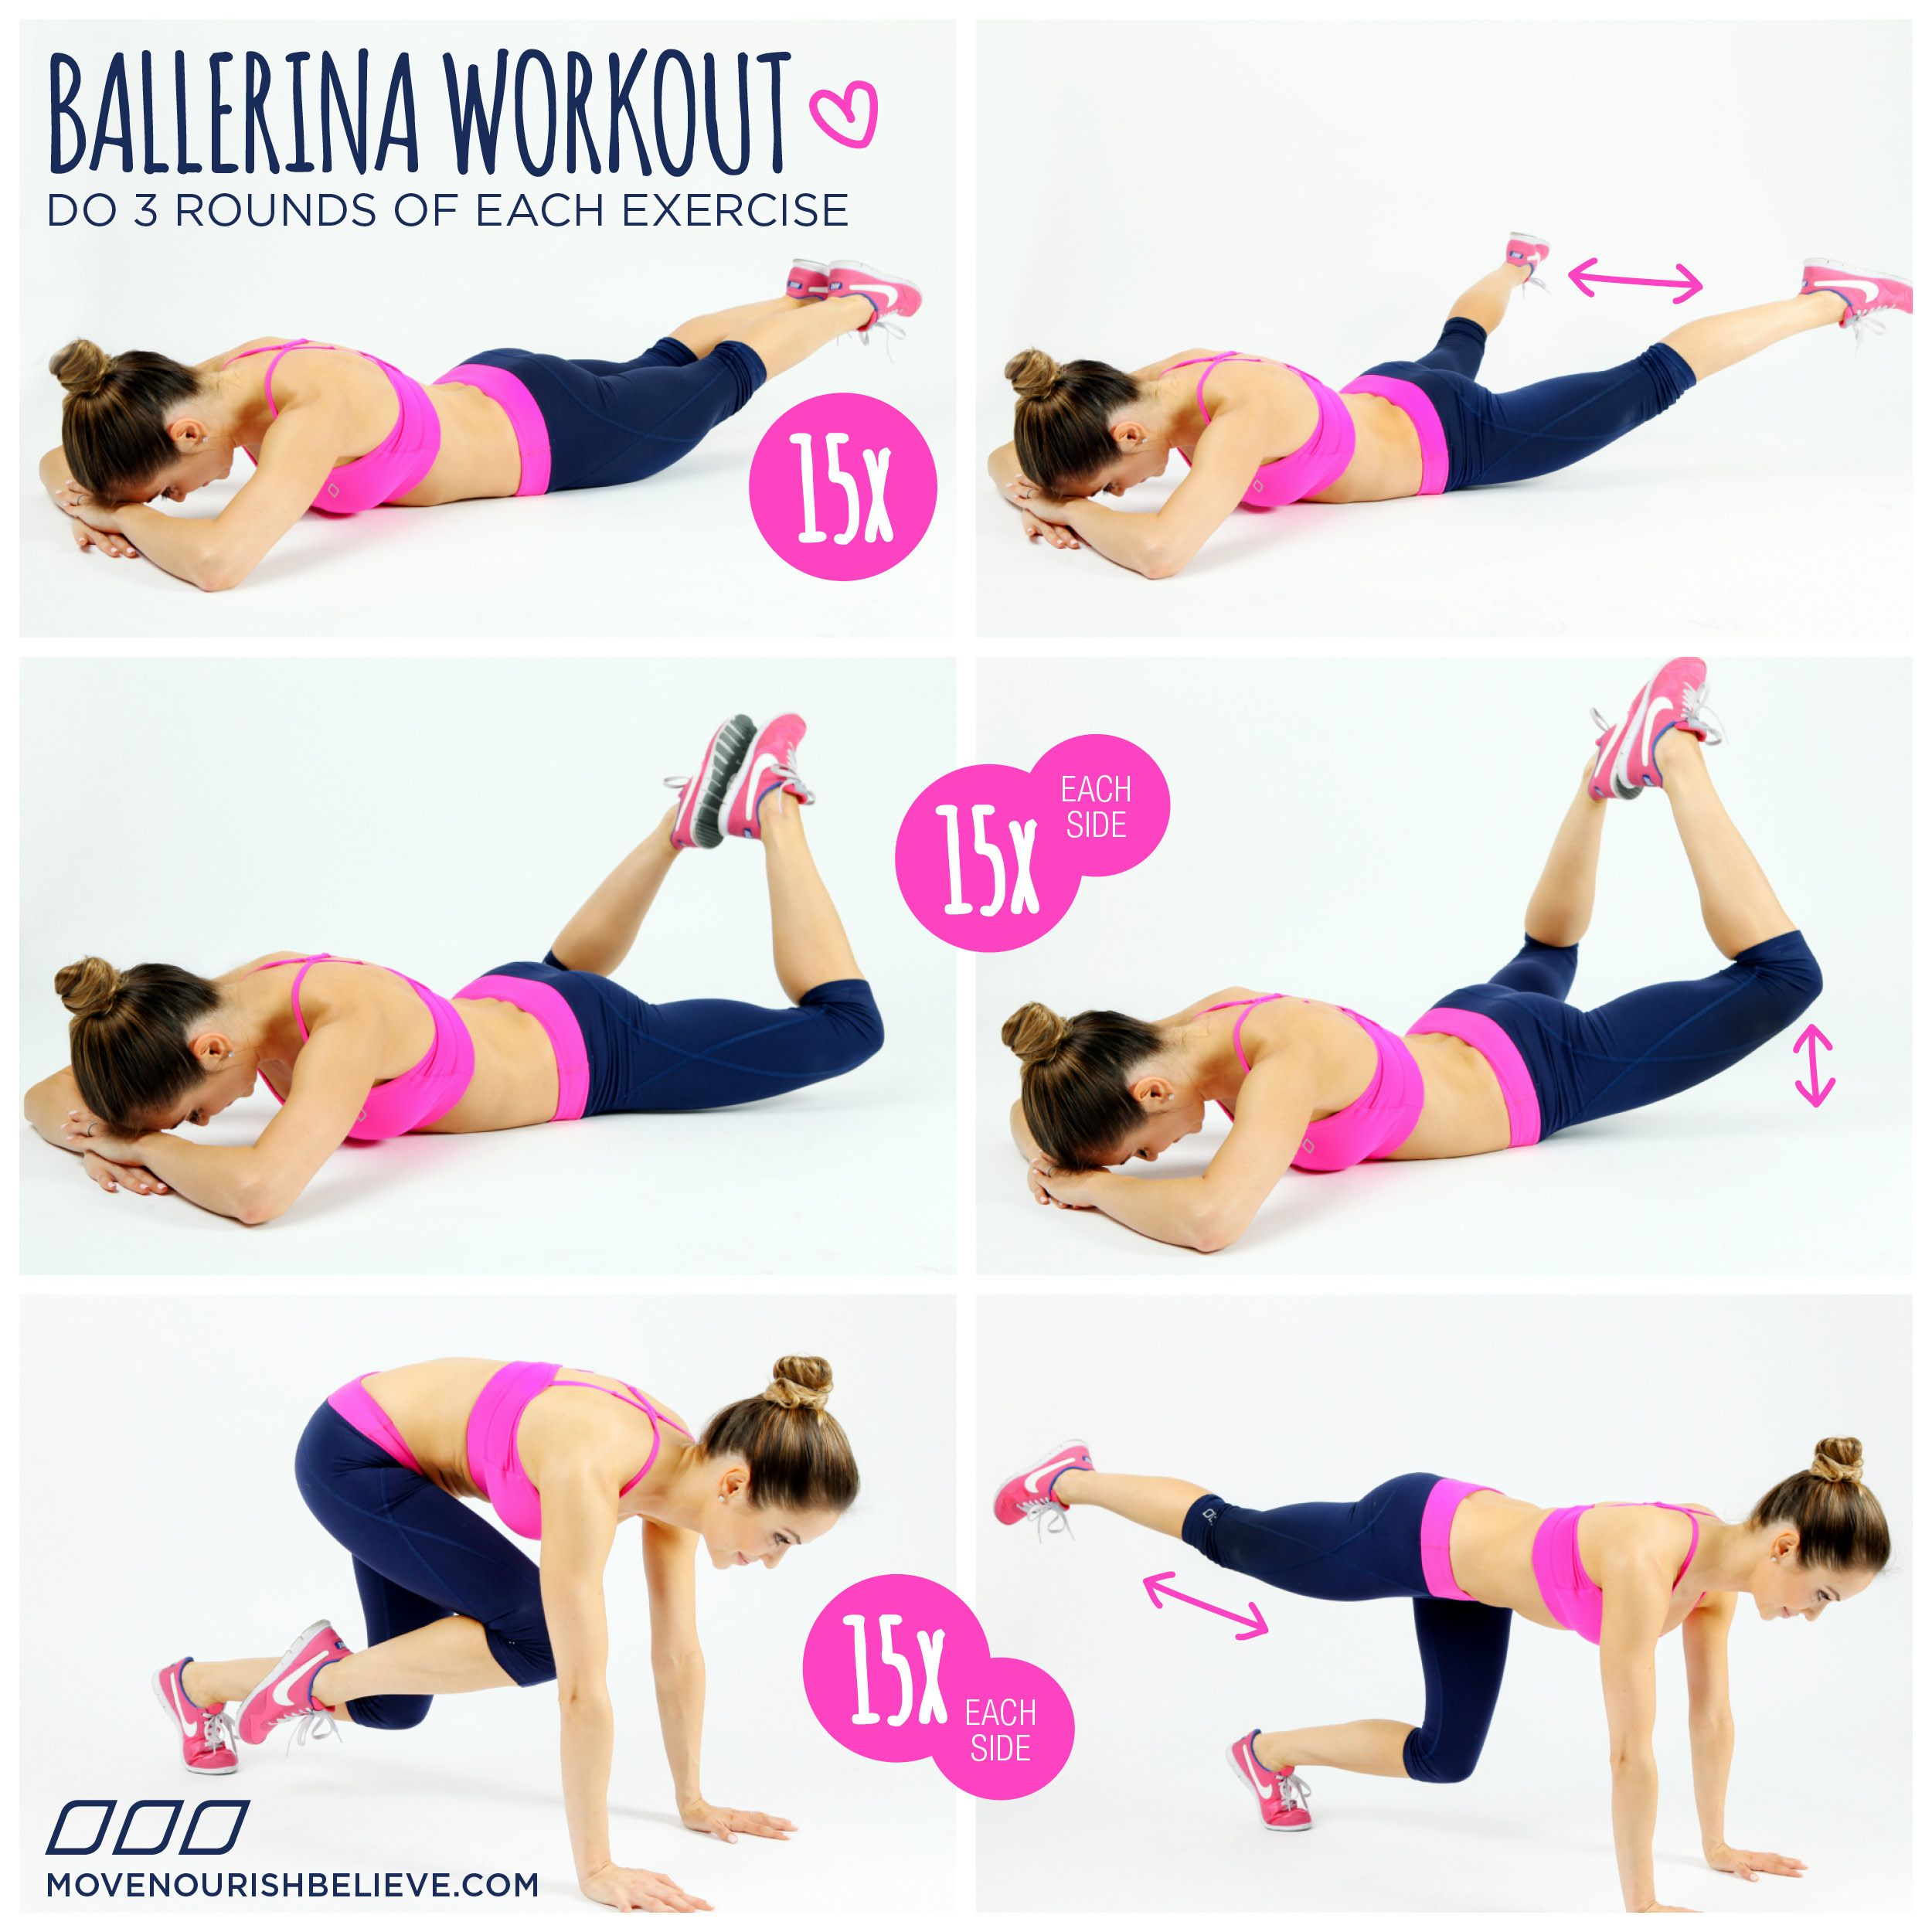 Ballerina Workout Ballerina Fitness Ballerina Workout Dancer